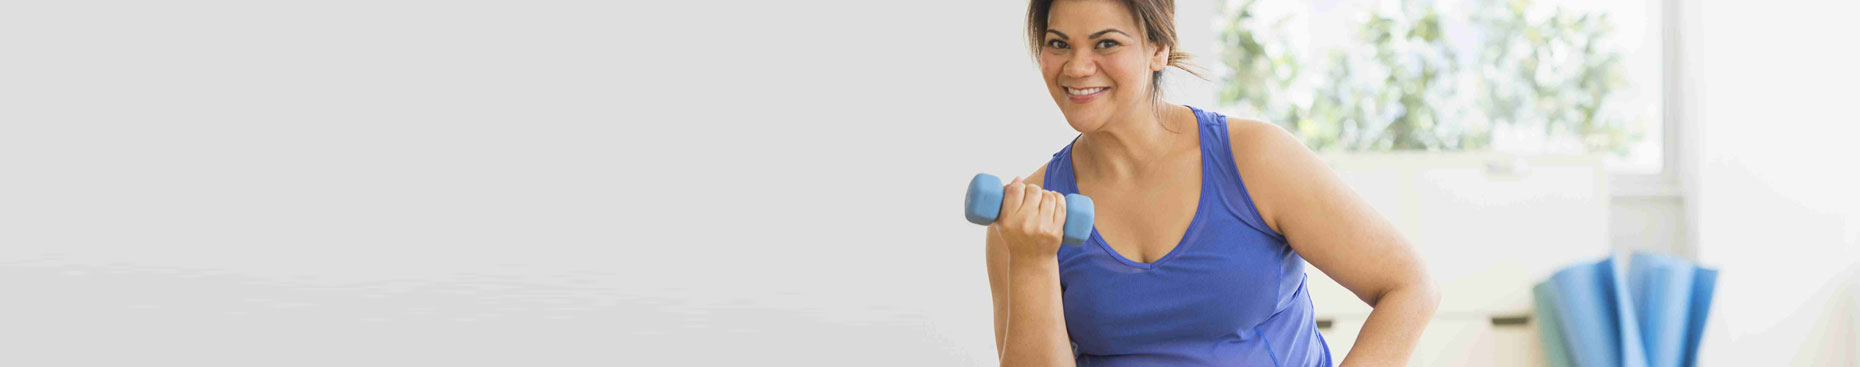 Important questions to ask before weight loss surgery